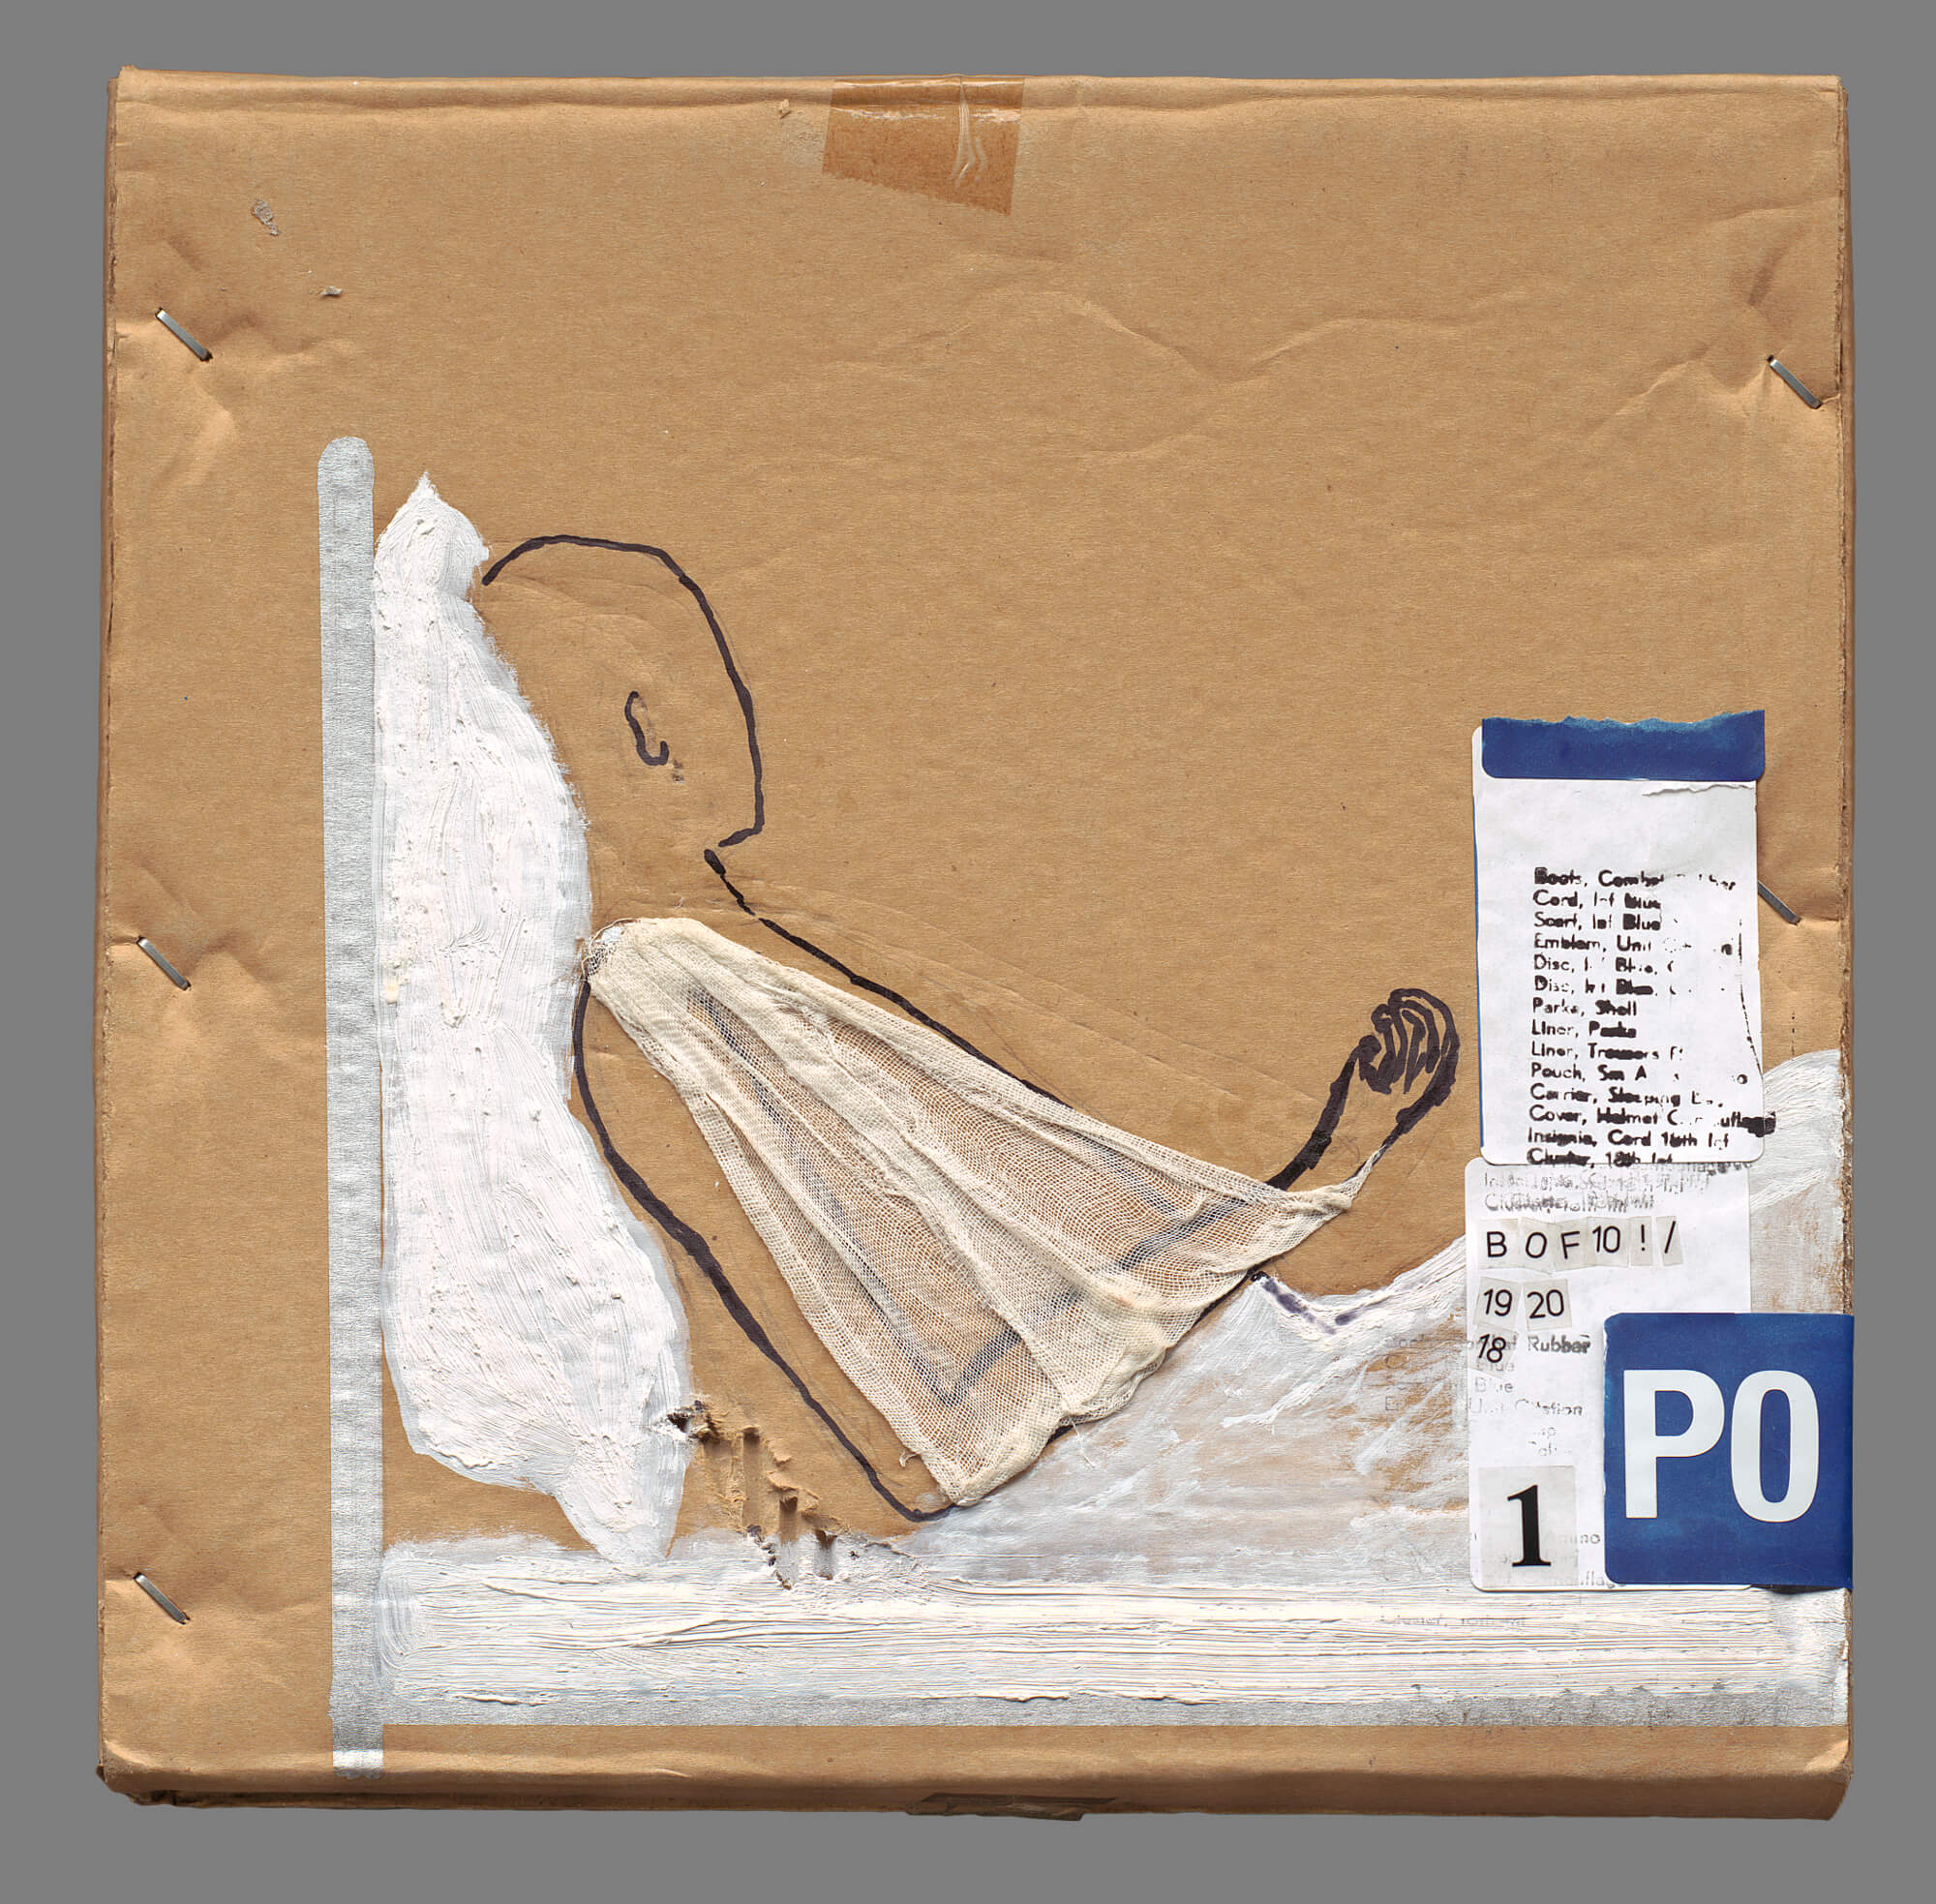 Untitled 2009 Mixed technique on carton box 32X32